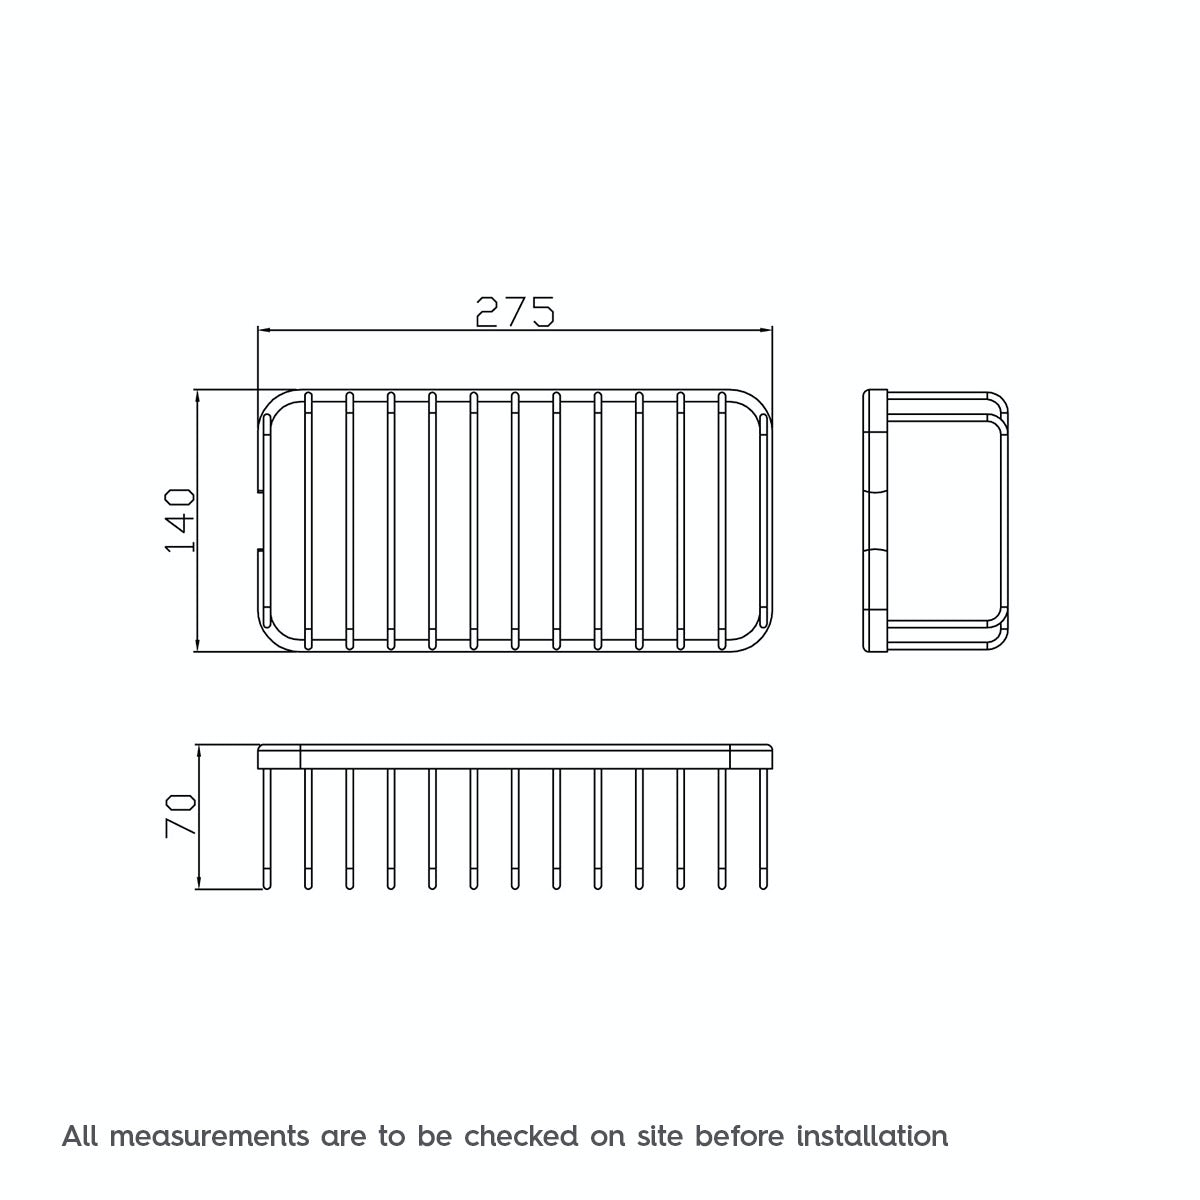 Dimensions for Orchard Options brass single rectangular shower caddy